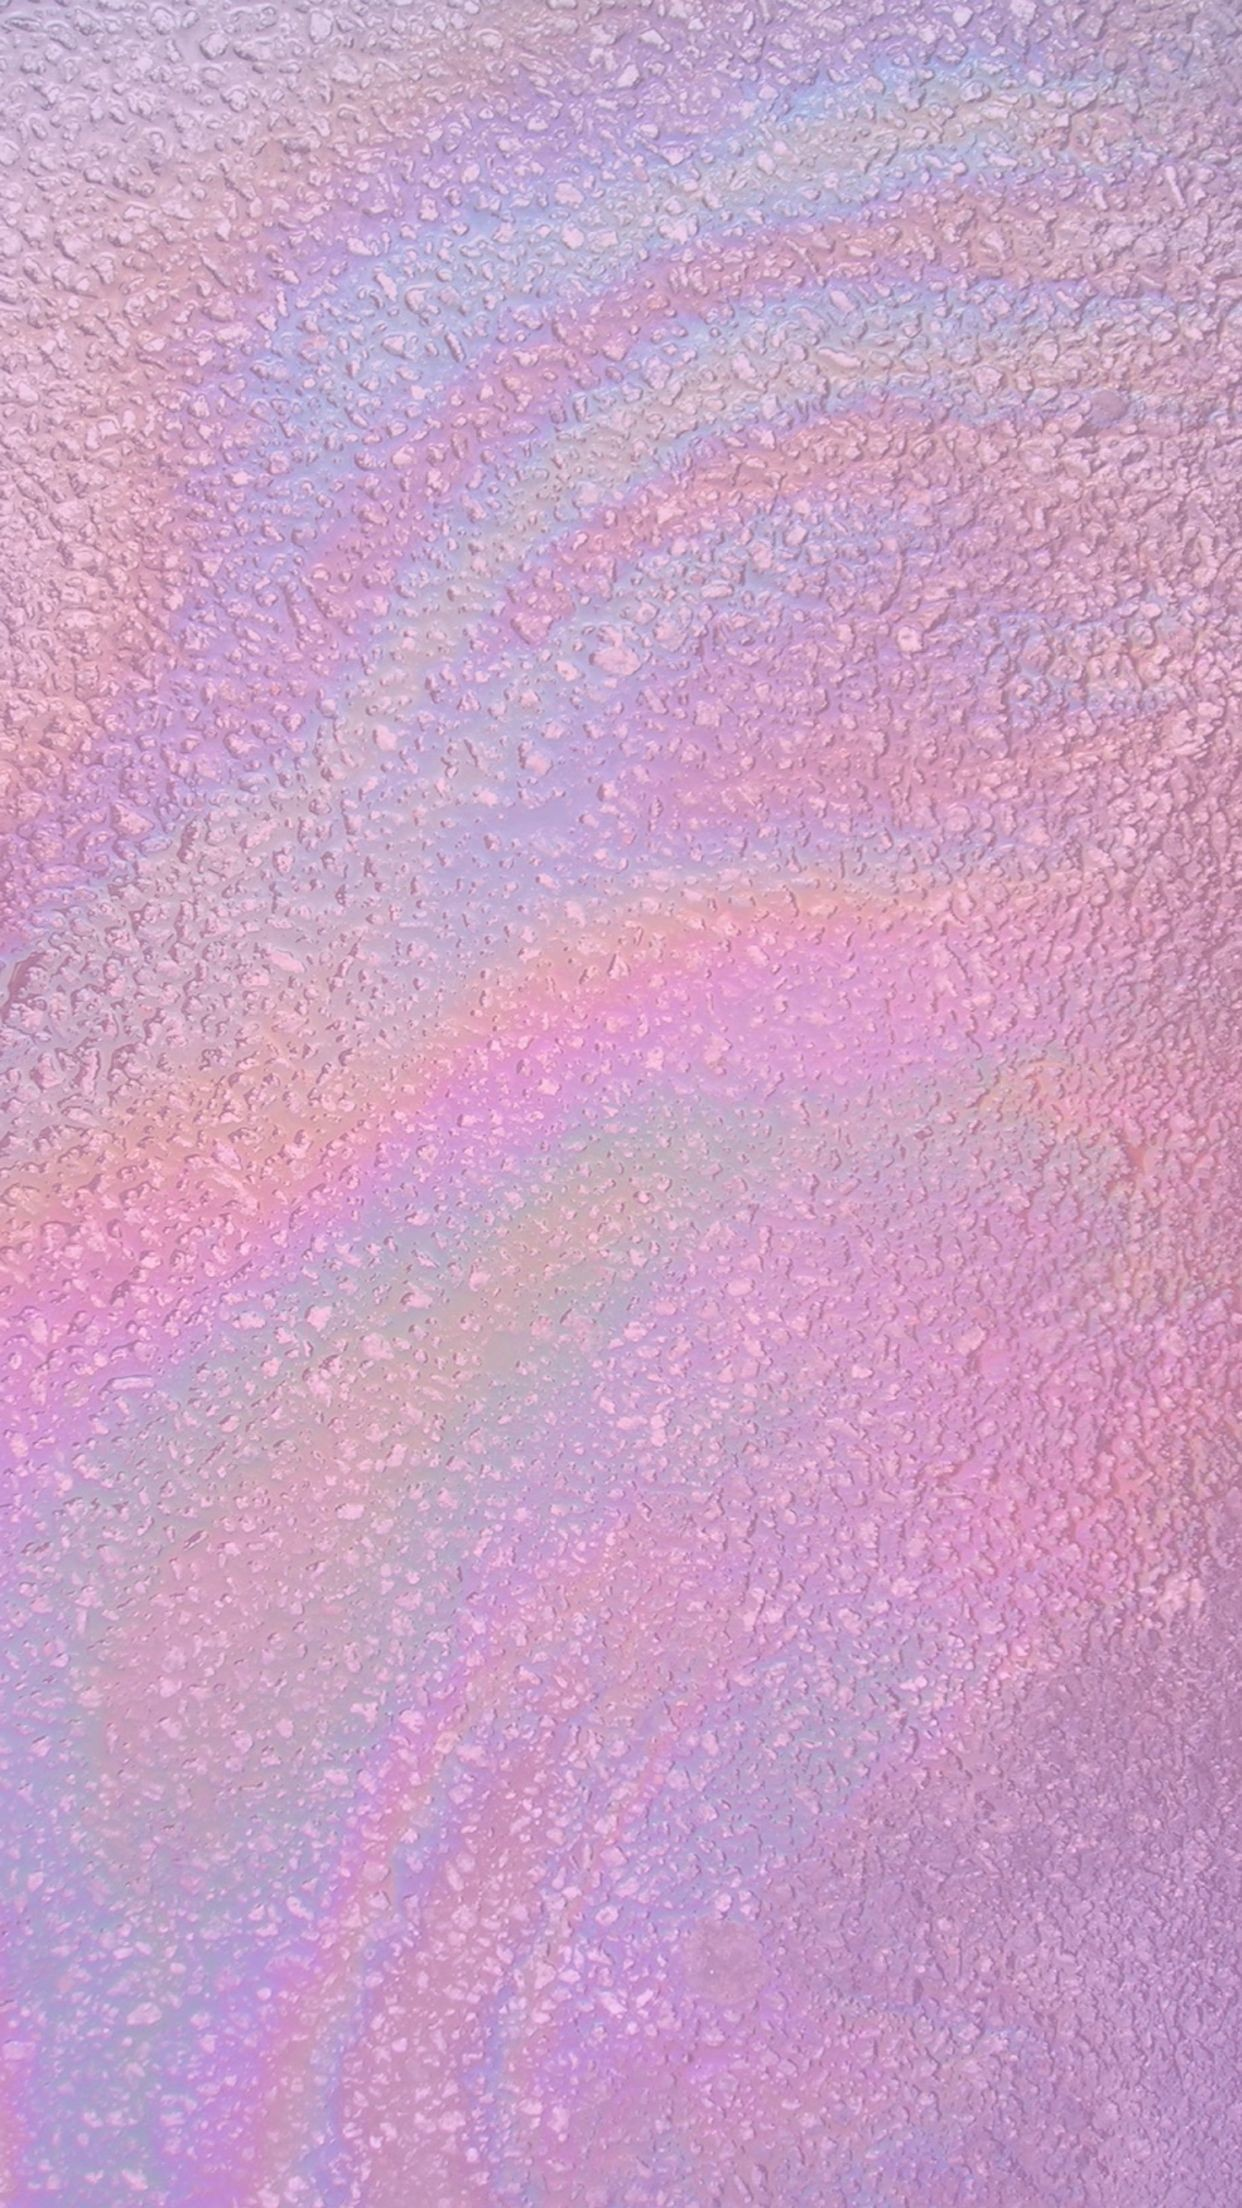 Res: 1242x2208, Iridescent Holographic Wallpaper, iPhone, Android, HD, Background, Pink,  Purple, Shiny, Glitter, Cute, Pretty